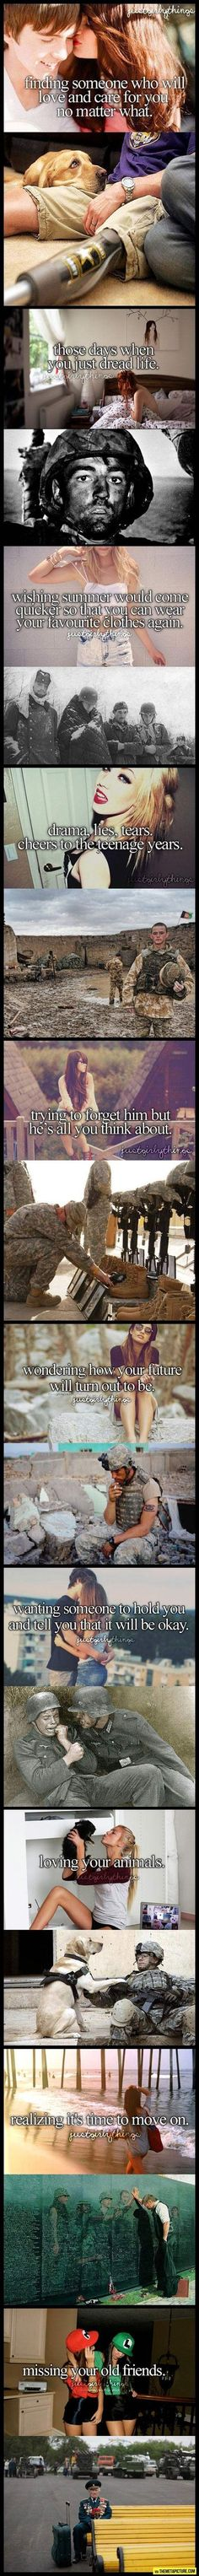 Things in perspective. Thanks to those serving!!